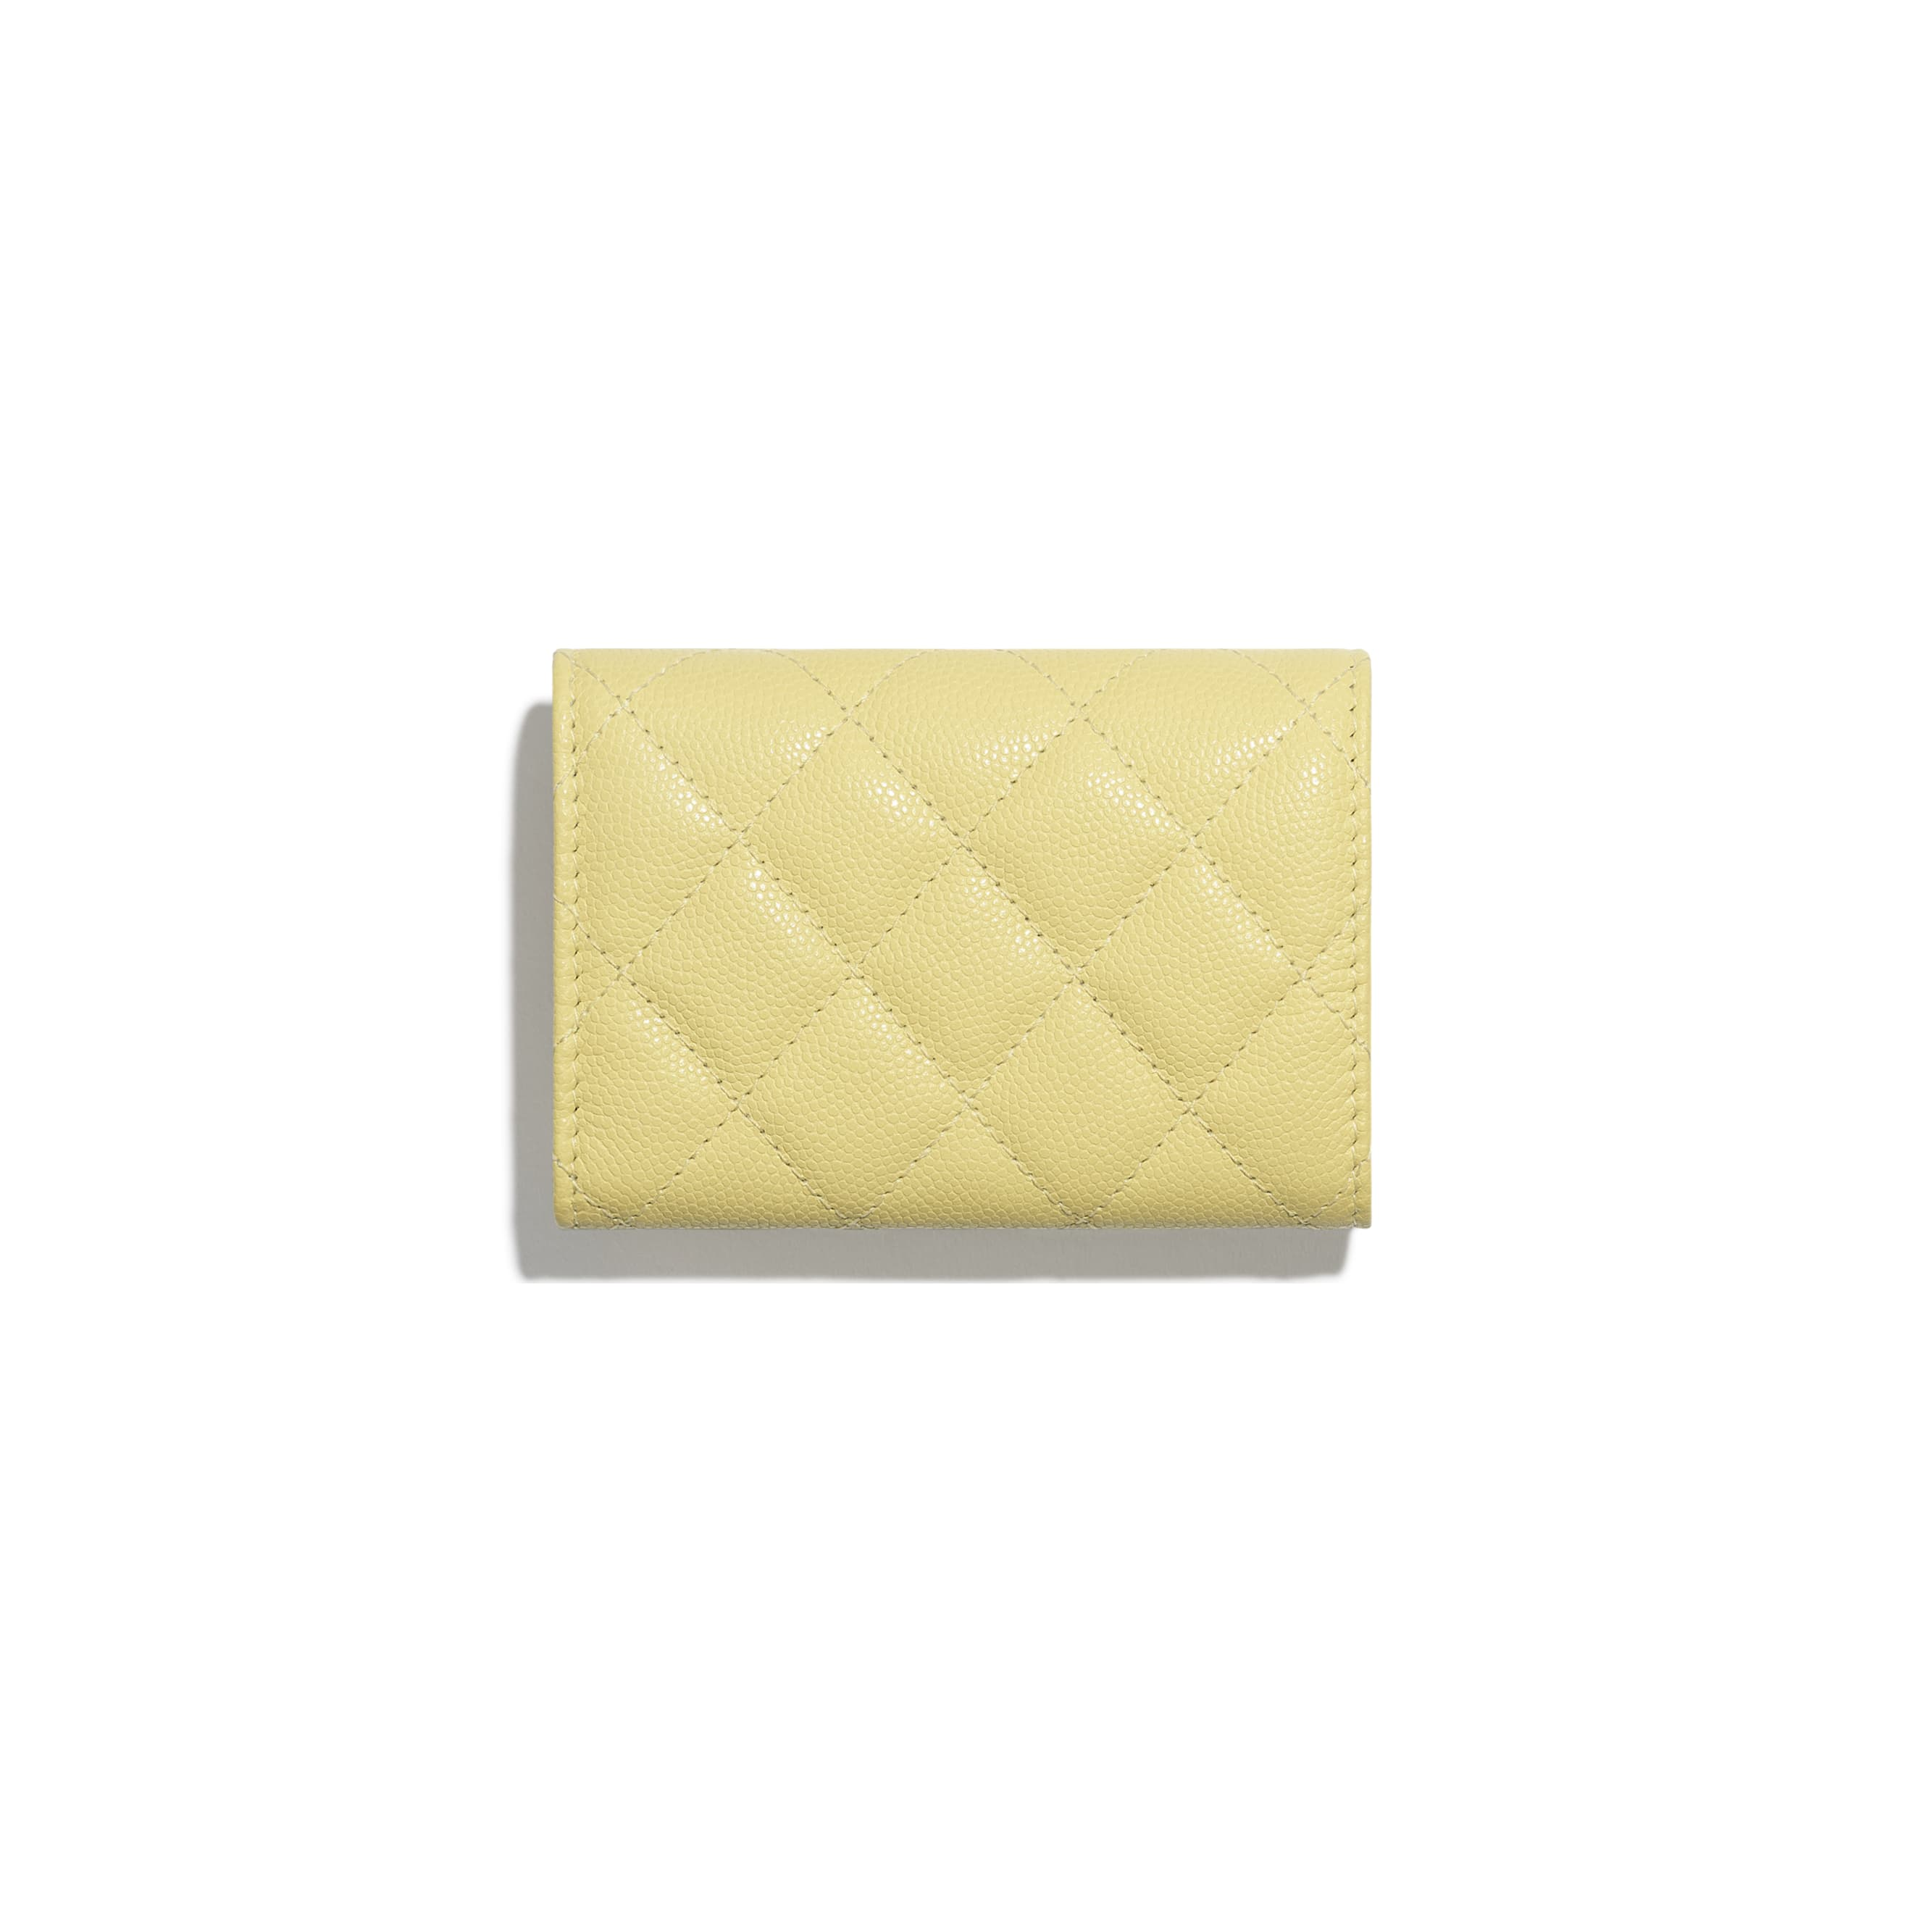 Classic Small Flap Wallet - Yellow - Grained Calfskin & Gold-Tone Metal - CHANEL - Alternative view - see standard sized version